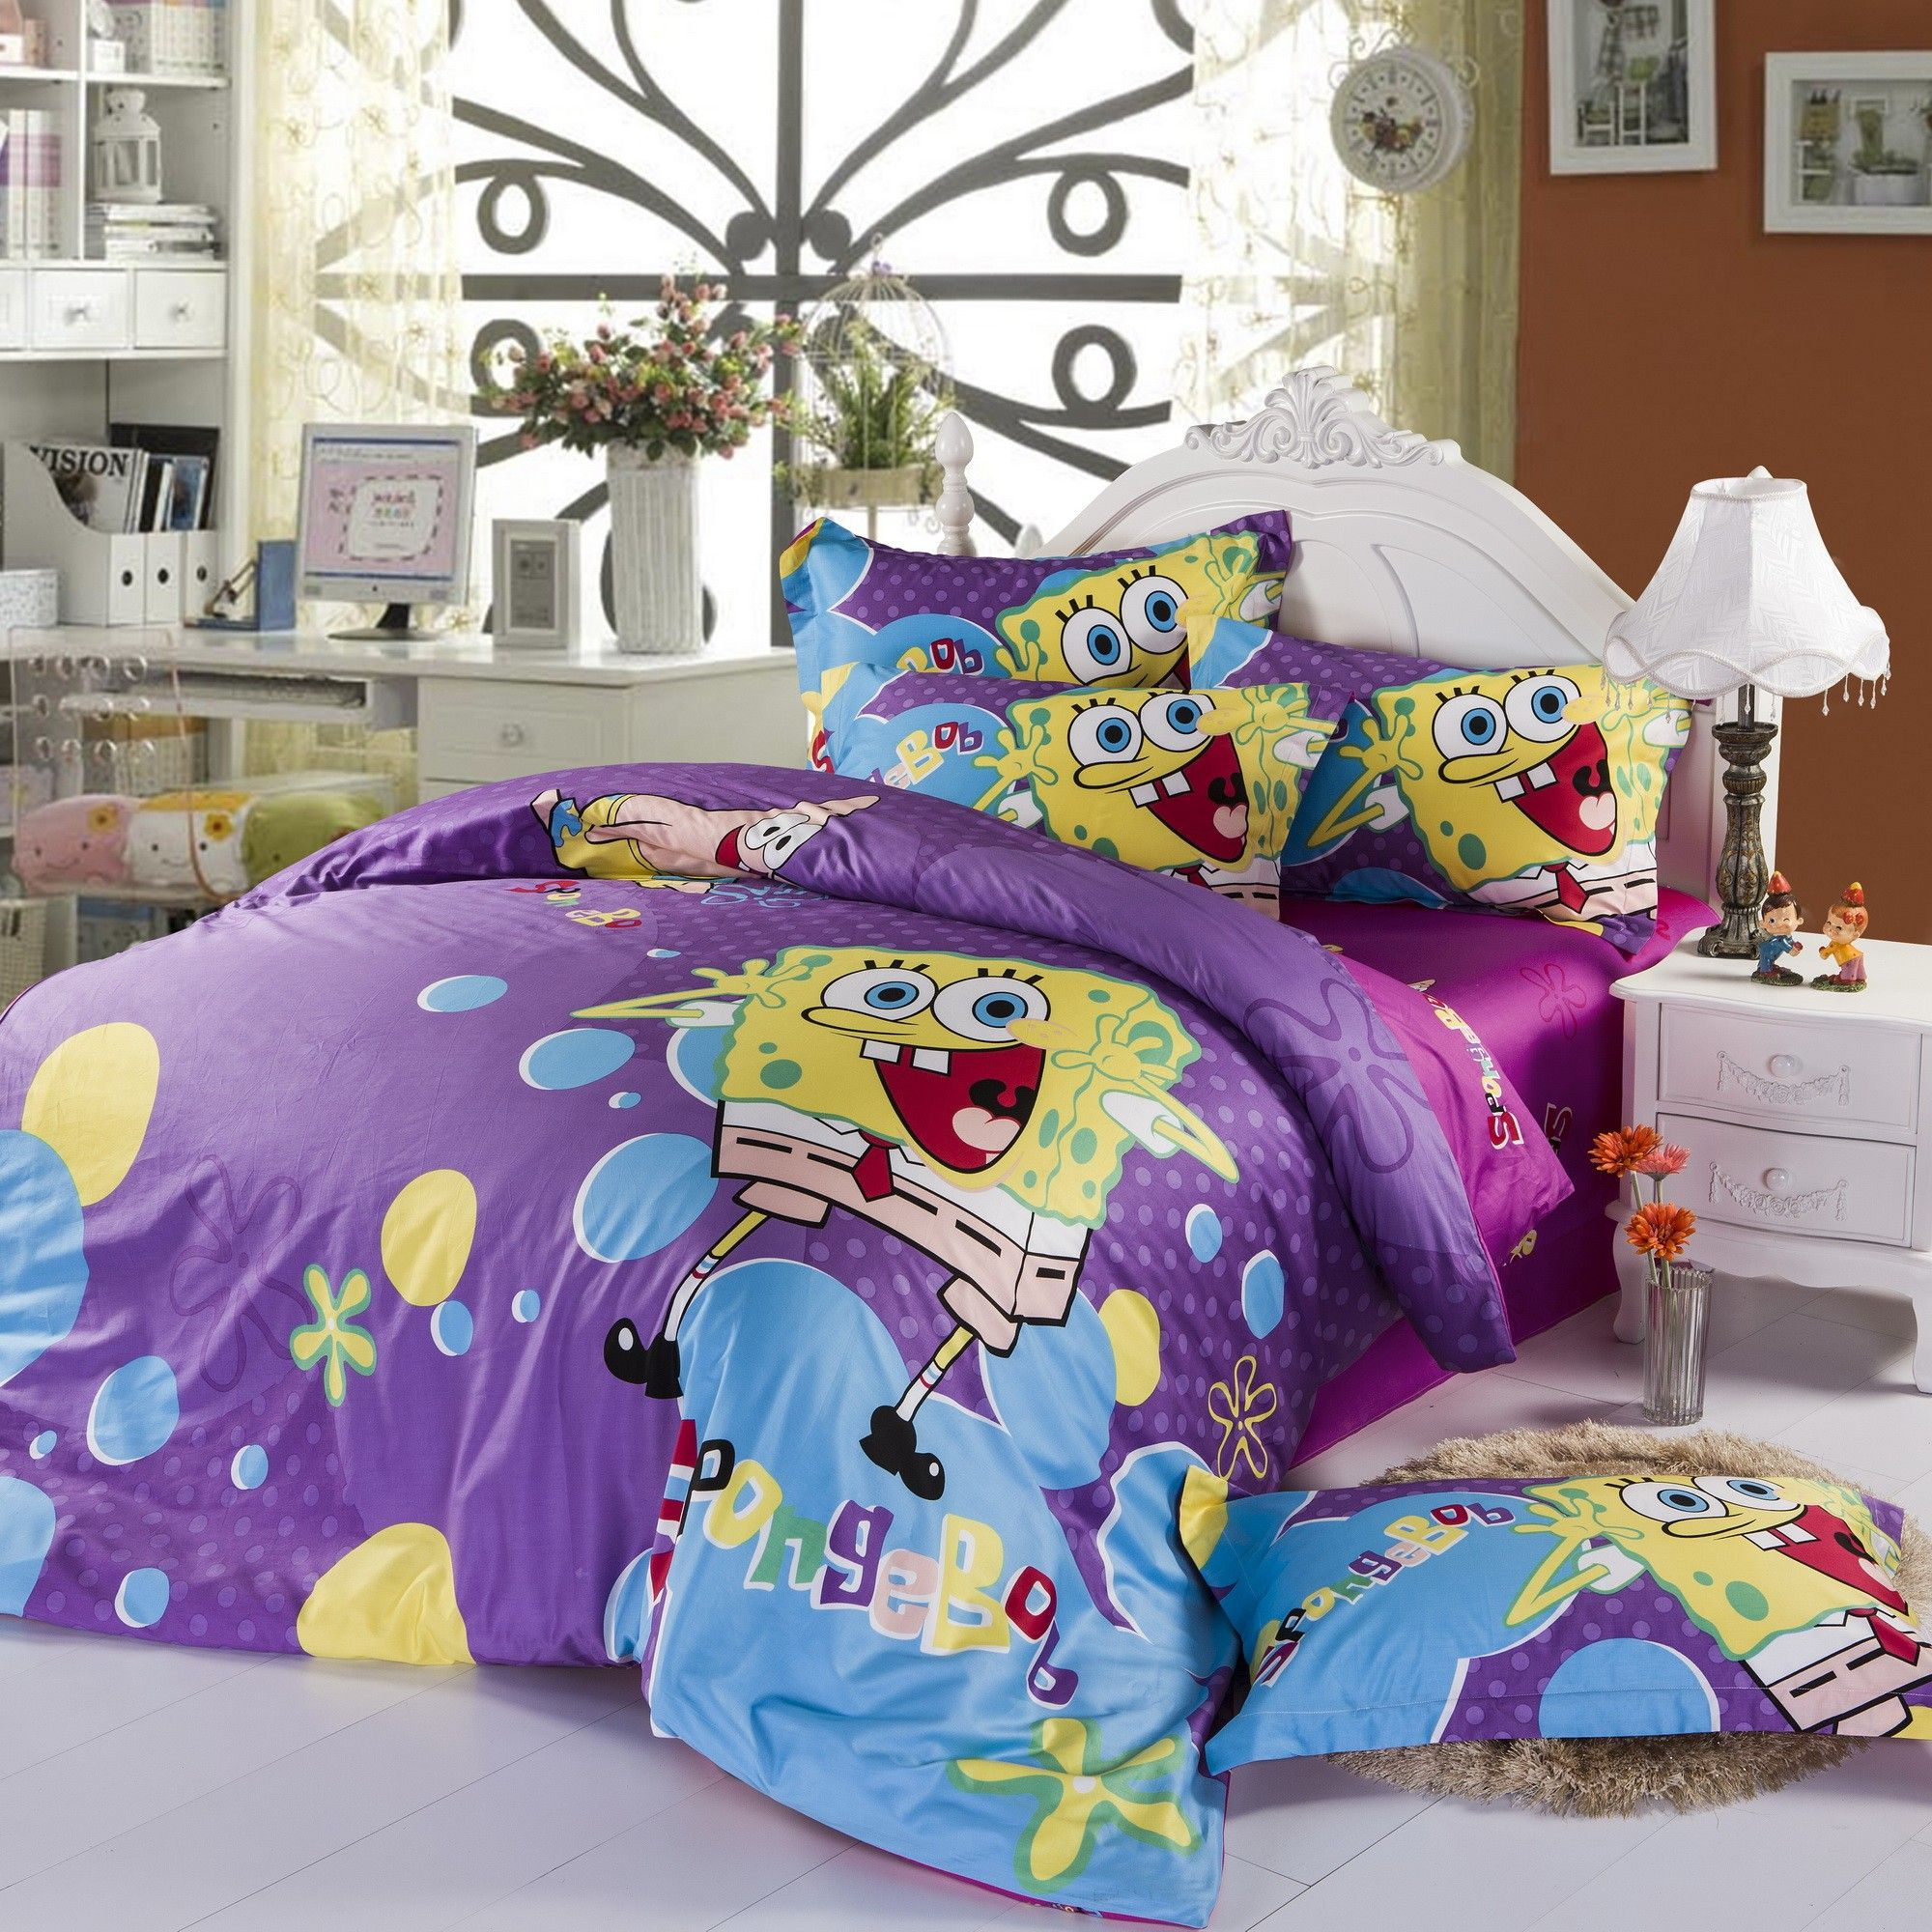 Genova Sofa Minimalis Unik Rumah Hotel Modern L Bed Bantal Custom Purple Spongebob Queen Size Cover Bedding Much In Demand By The Girls